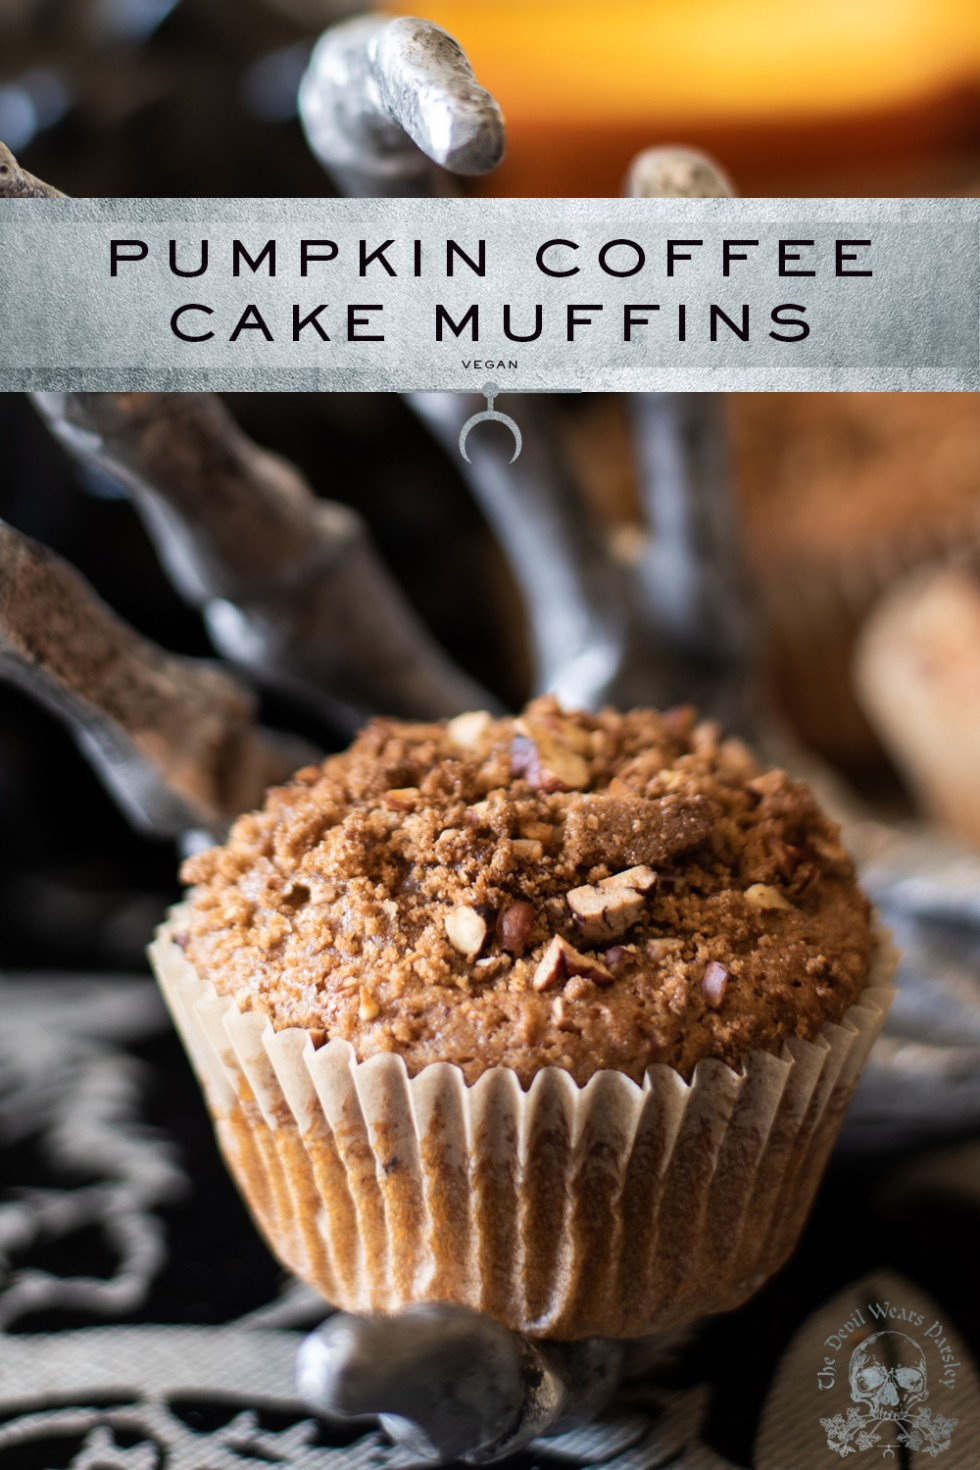 Pumpkin Coffee Cake Muffins - a perfect accompaniment to a steaming cup of coffee in the heart of fall.